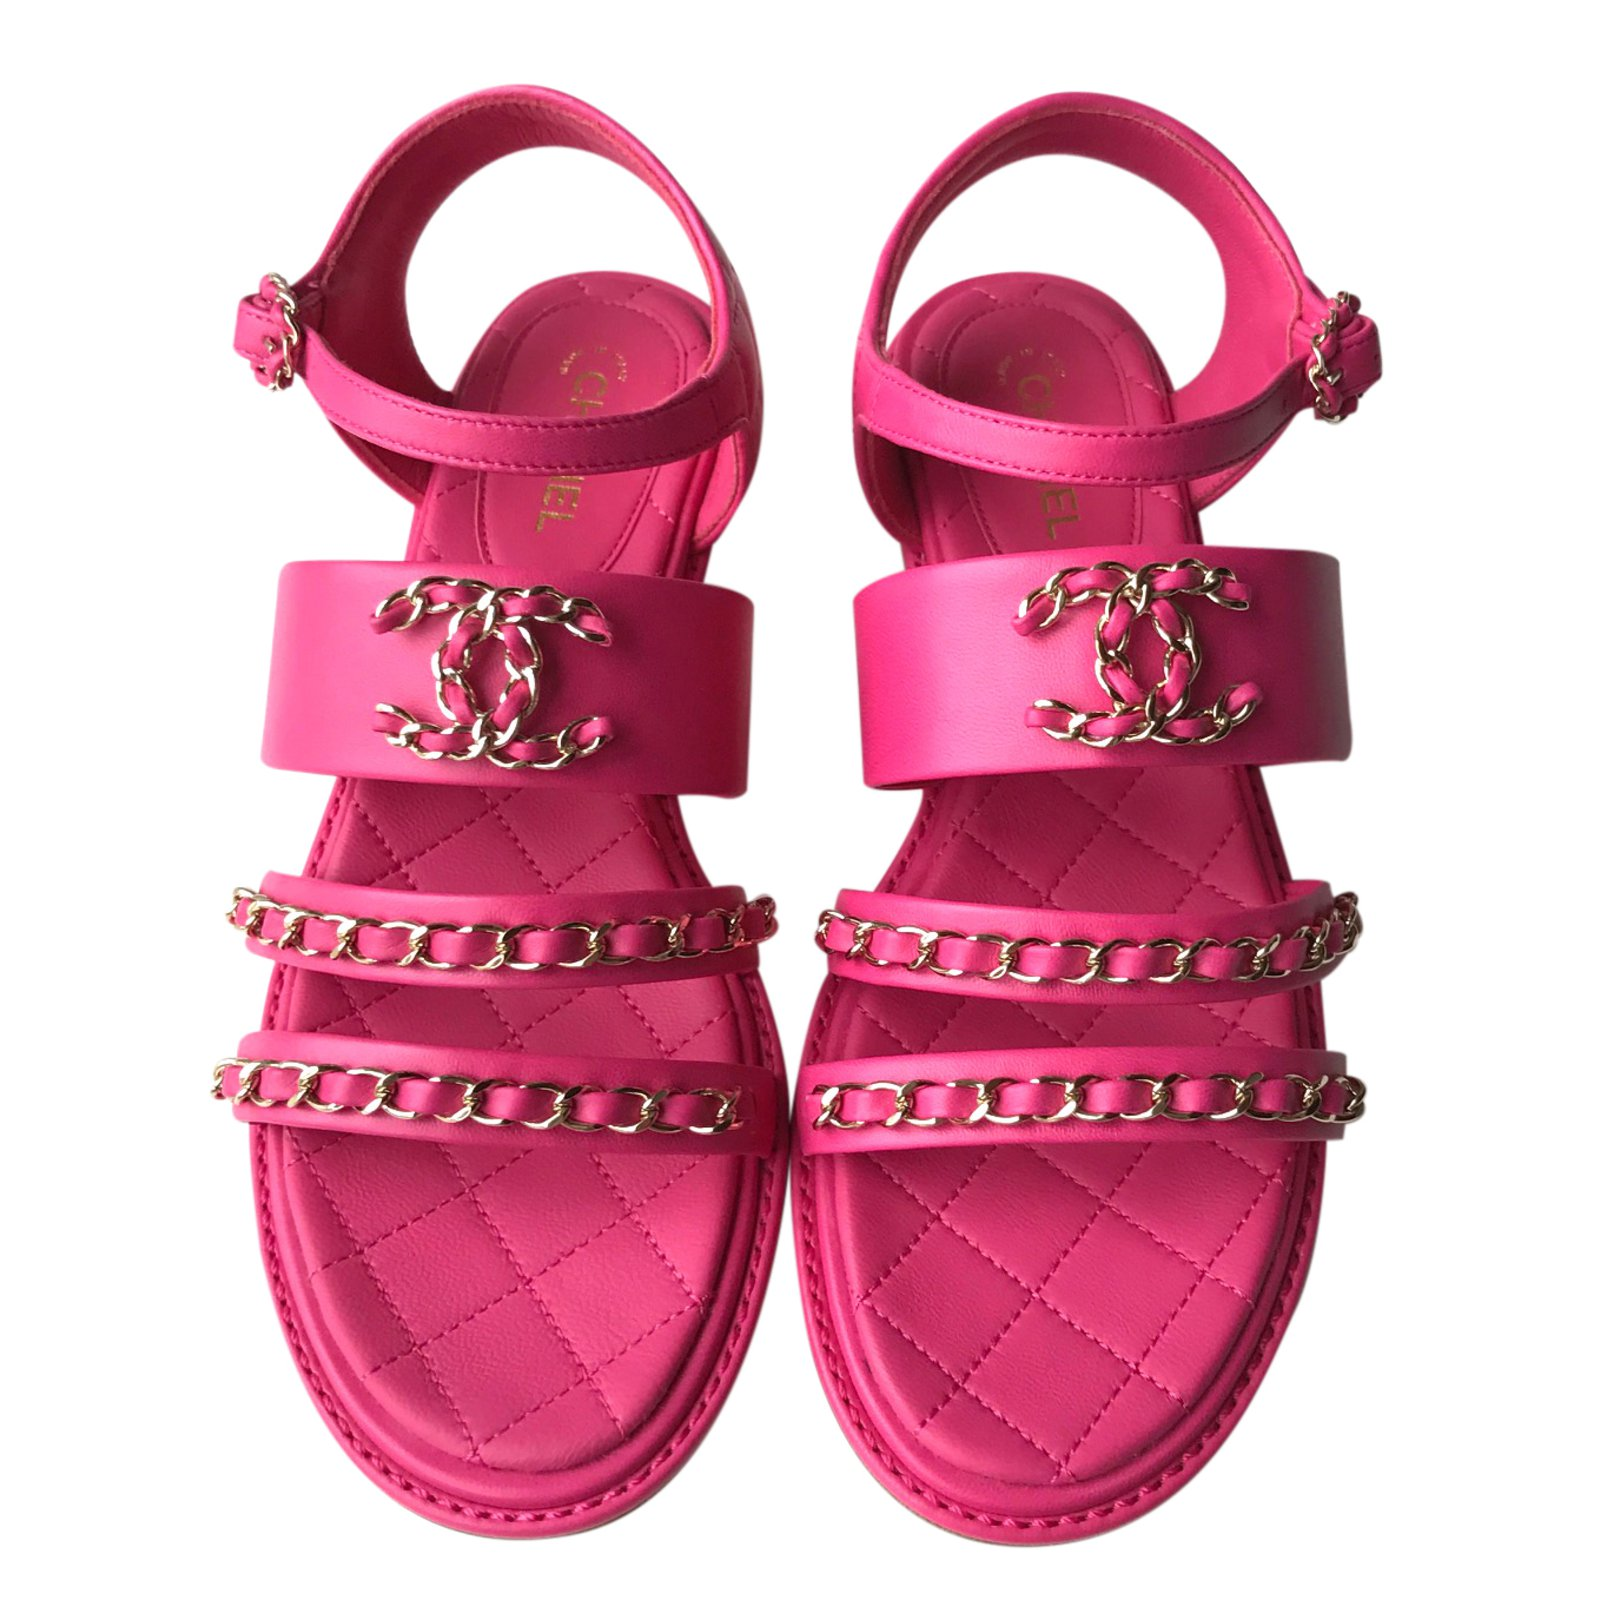 Chanel Sandals Sandals Leather Pink ref